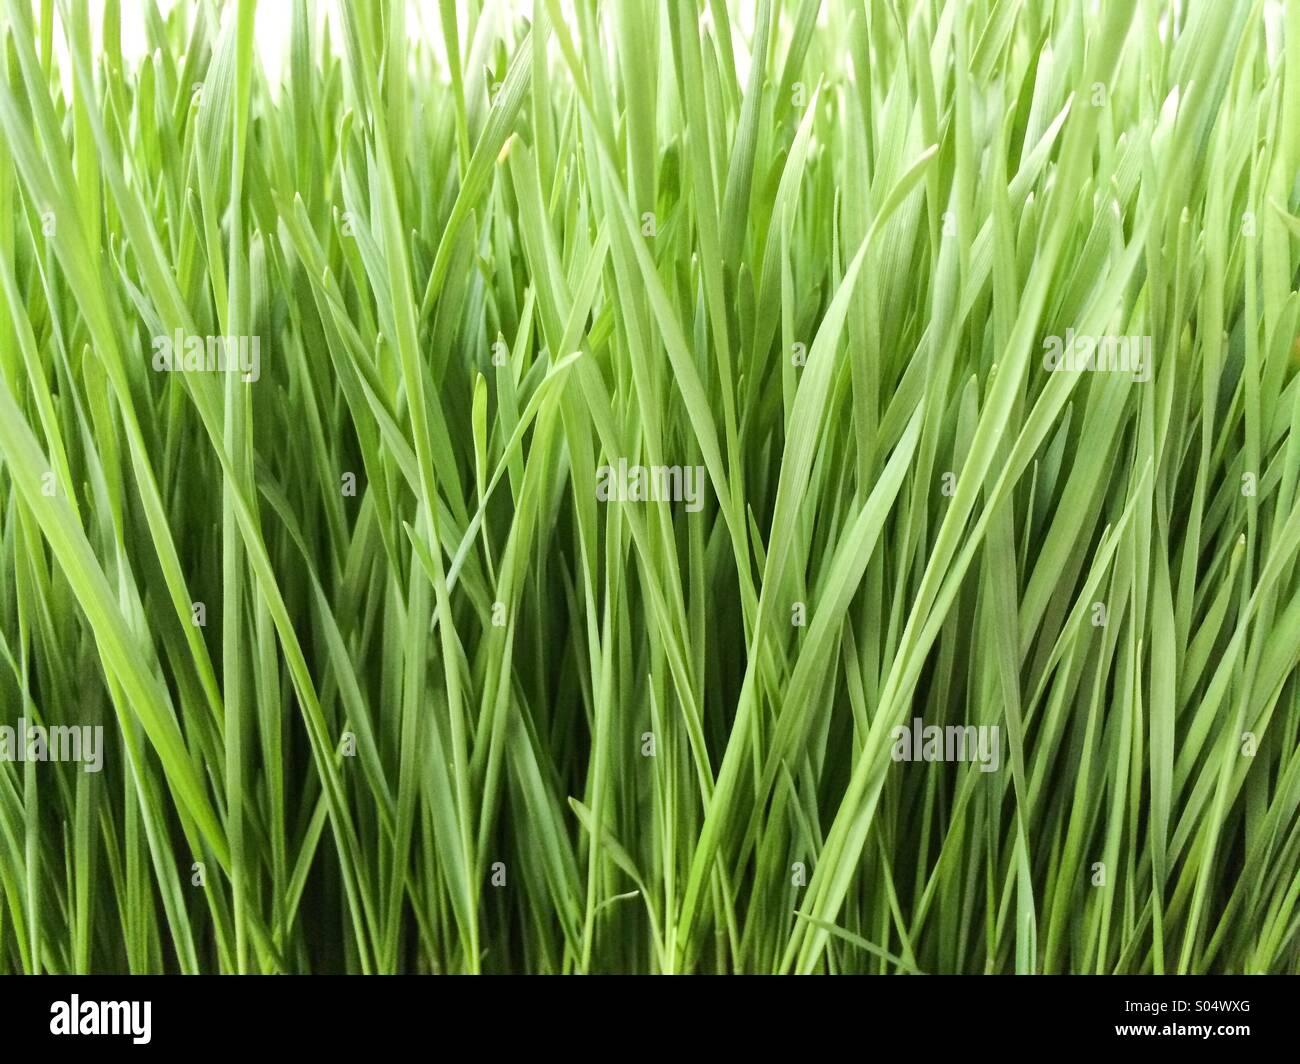 Green wheatgrass crops field - Stock Image